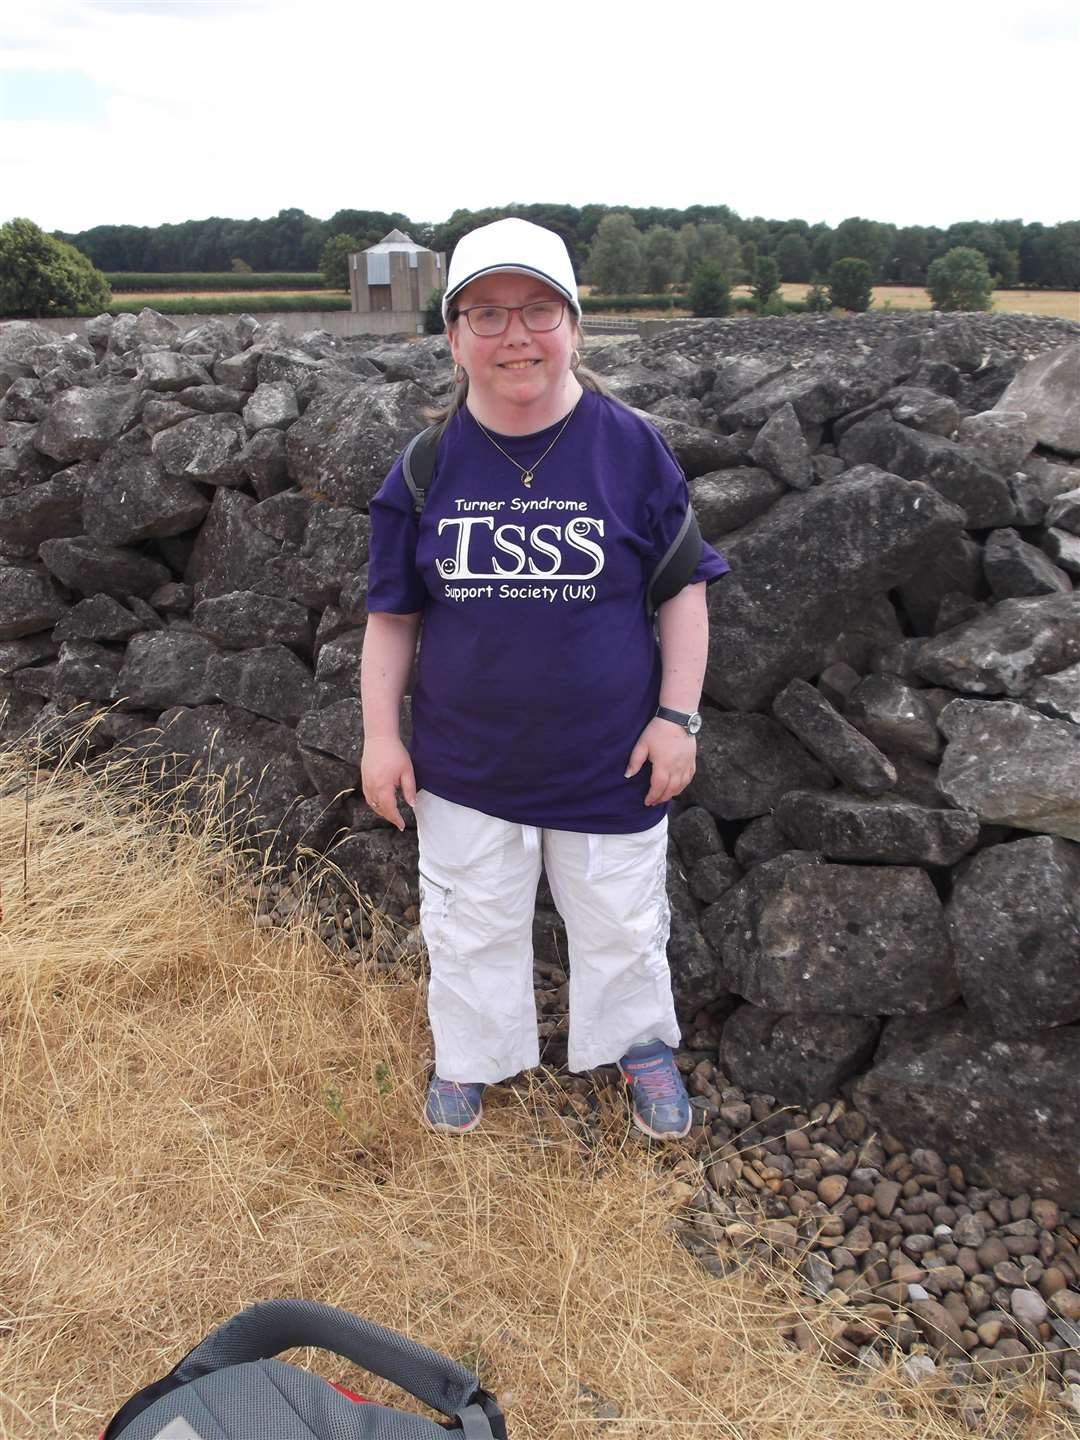 Tammy Richards walked around Rutland Water for charity